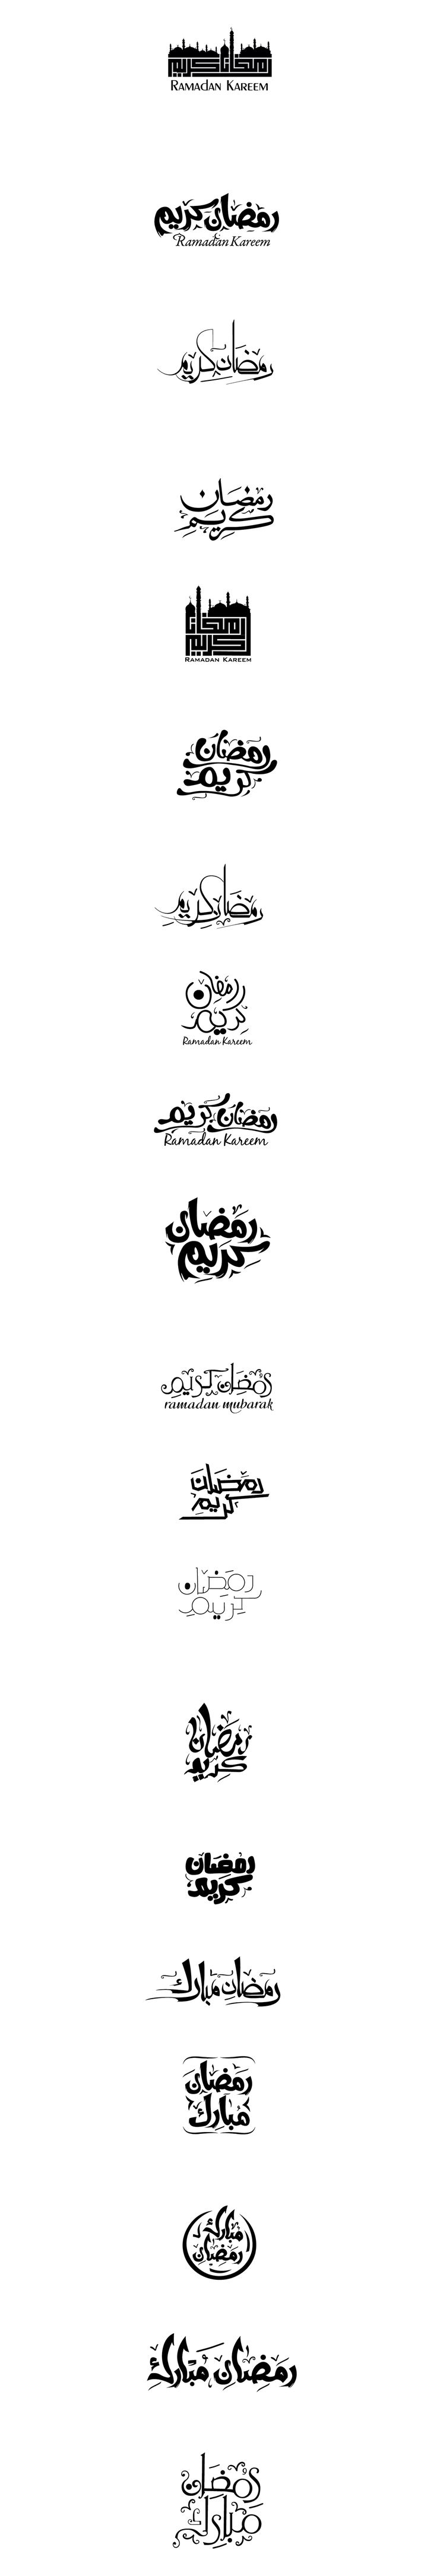 must see ramadan pins ramadan decorations eid and ramadan crafts ramadan kreem on behance 16031604 159315751605 16081575160615781605 1576158216101585 1548 15851605159015751606 1603158516101605